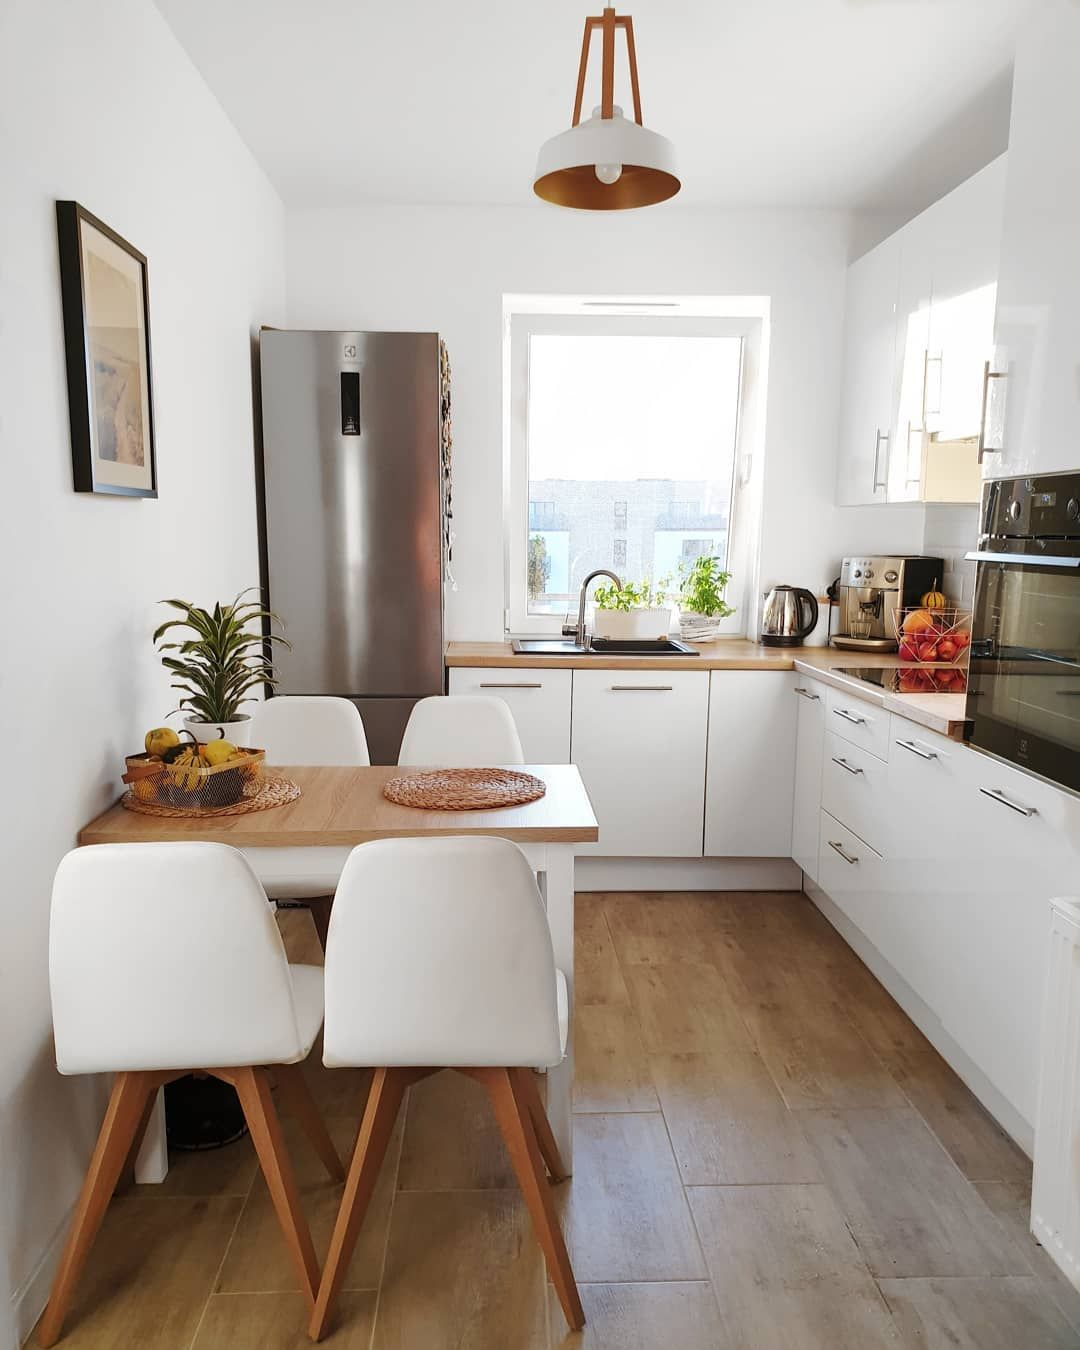 17 tips tricks for small space living extra space storage in 2020 small apartment on kitchen organization for small spaces id=66687